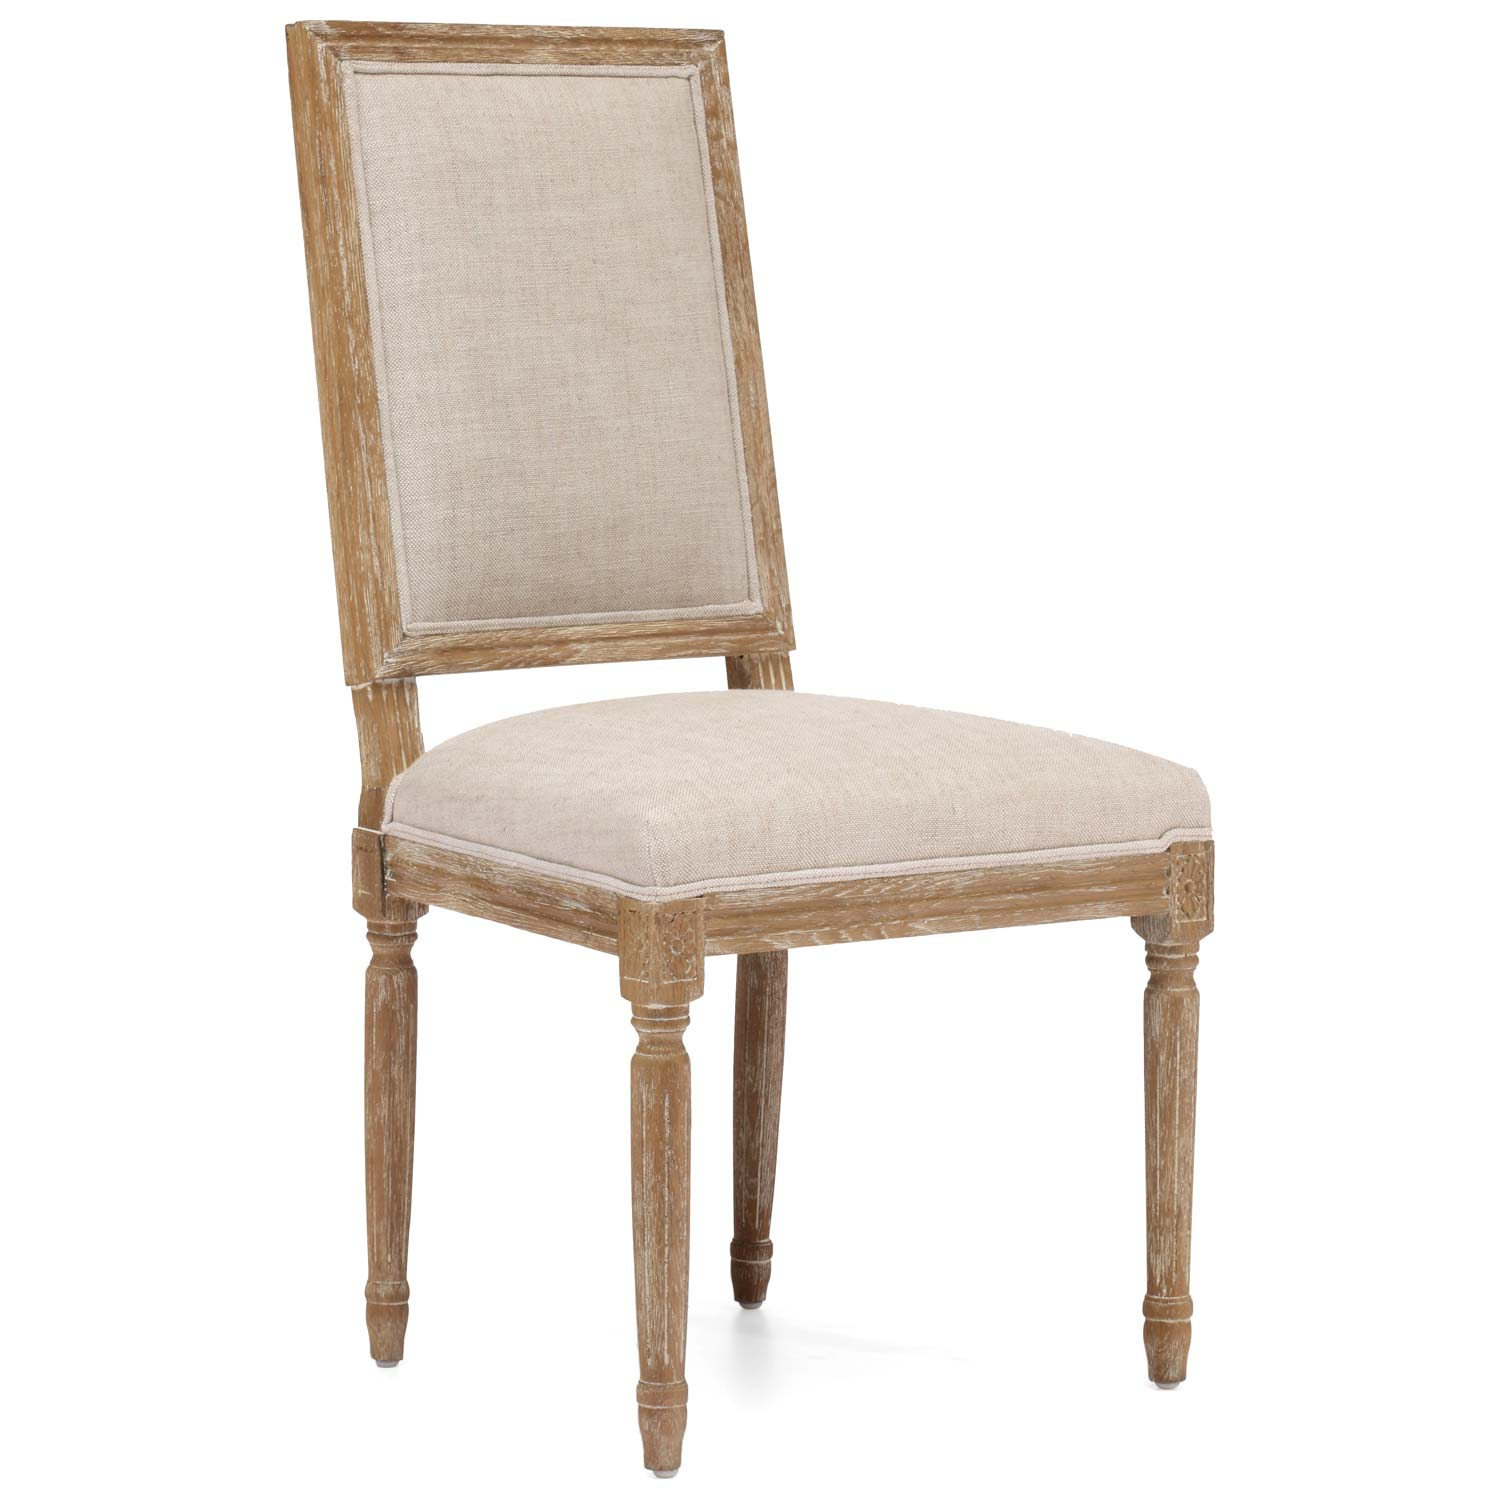 Cole Valley Chair - Wood Frame, Beige Linen - ZM-98074